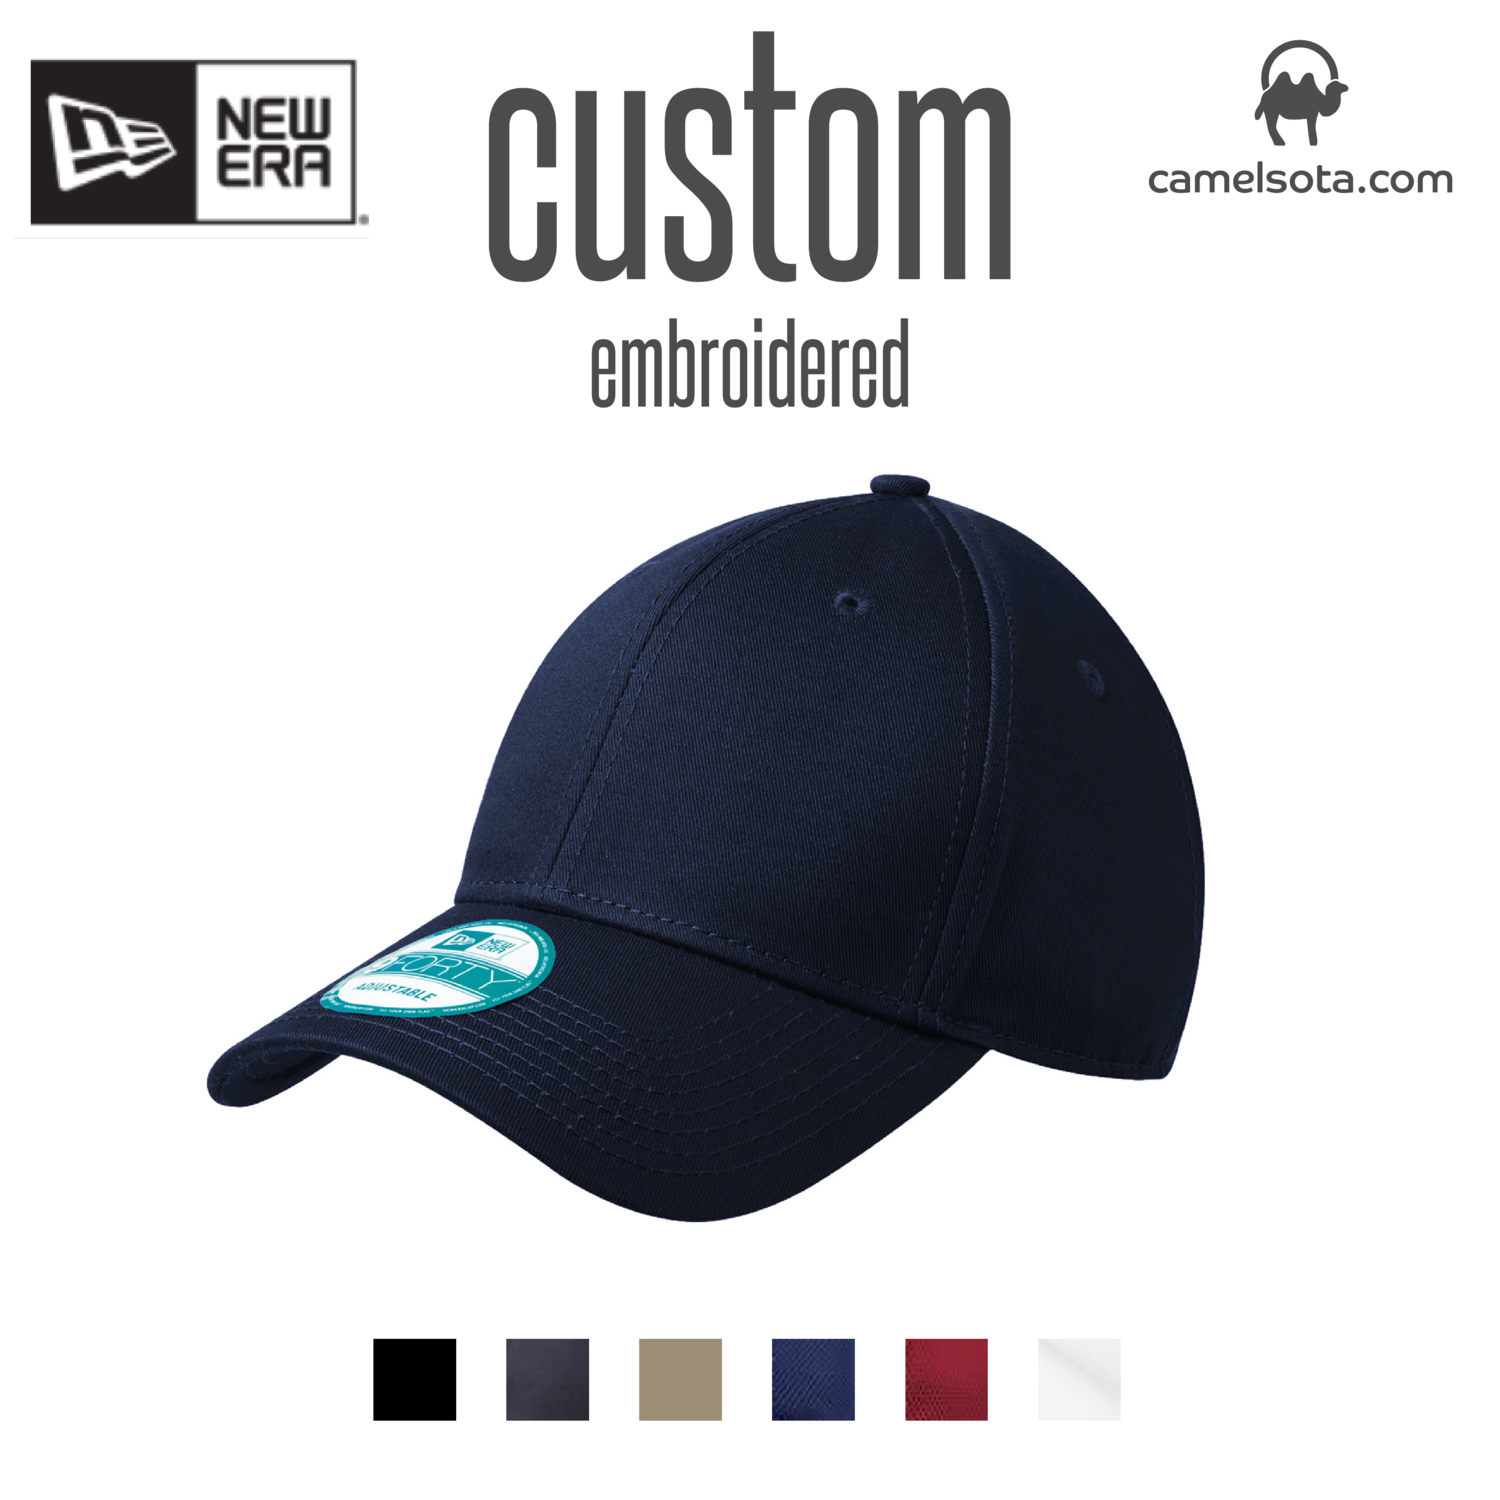 Custom New Era® - Adjustable Structured Cap